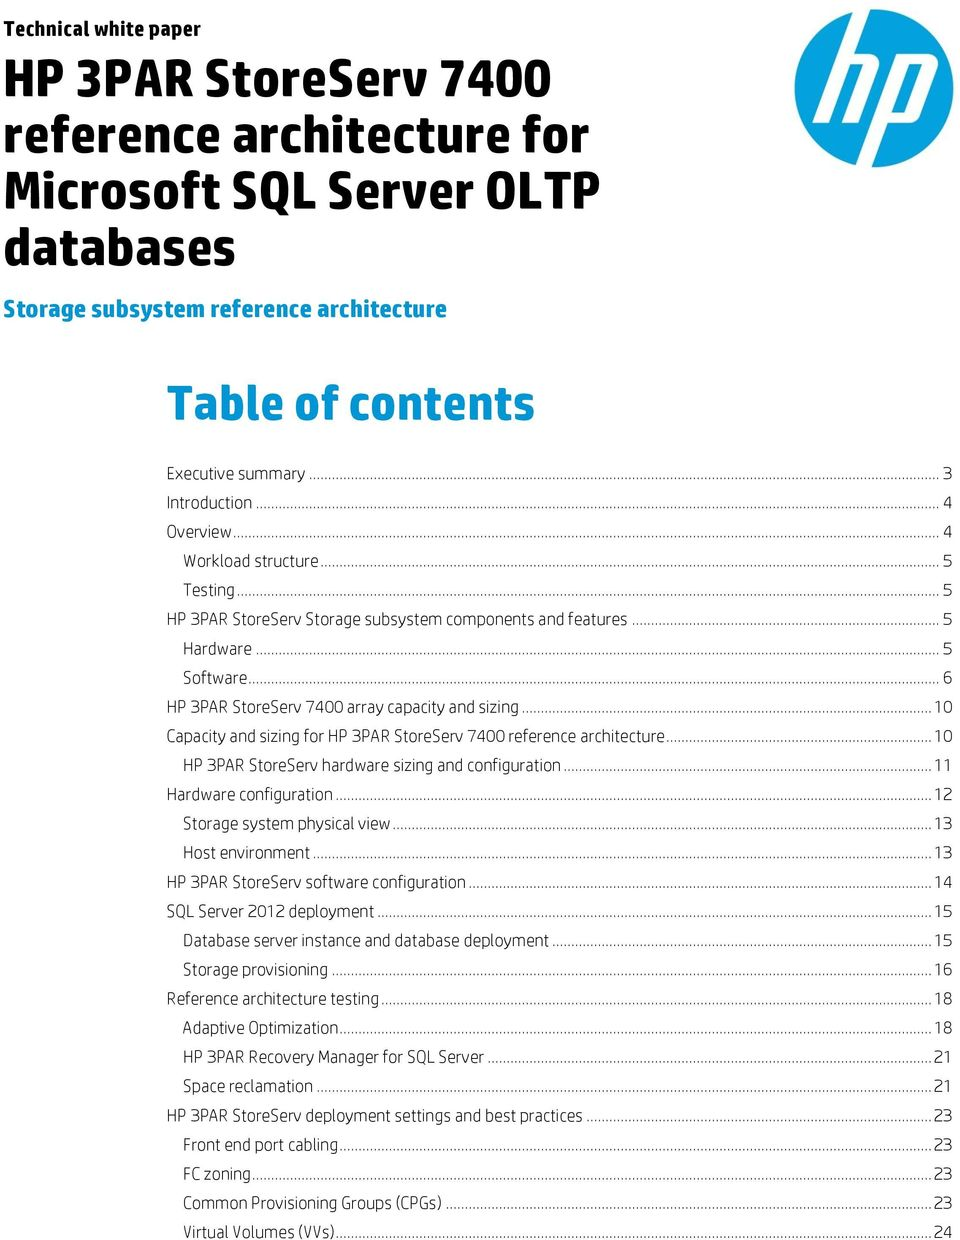 HP 3PAR StoreServ 7400 reference architecture for Microsoft